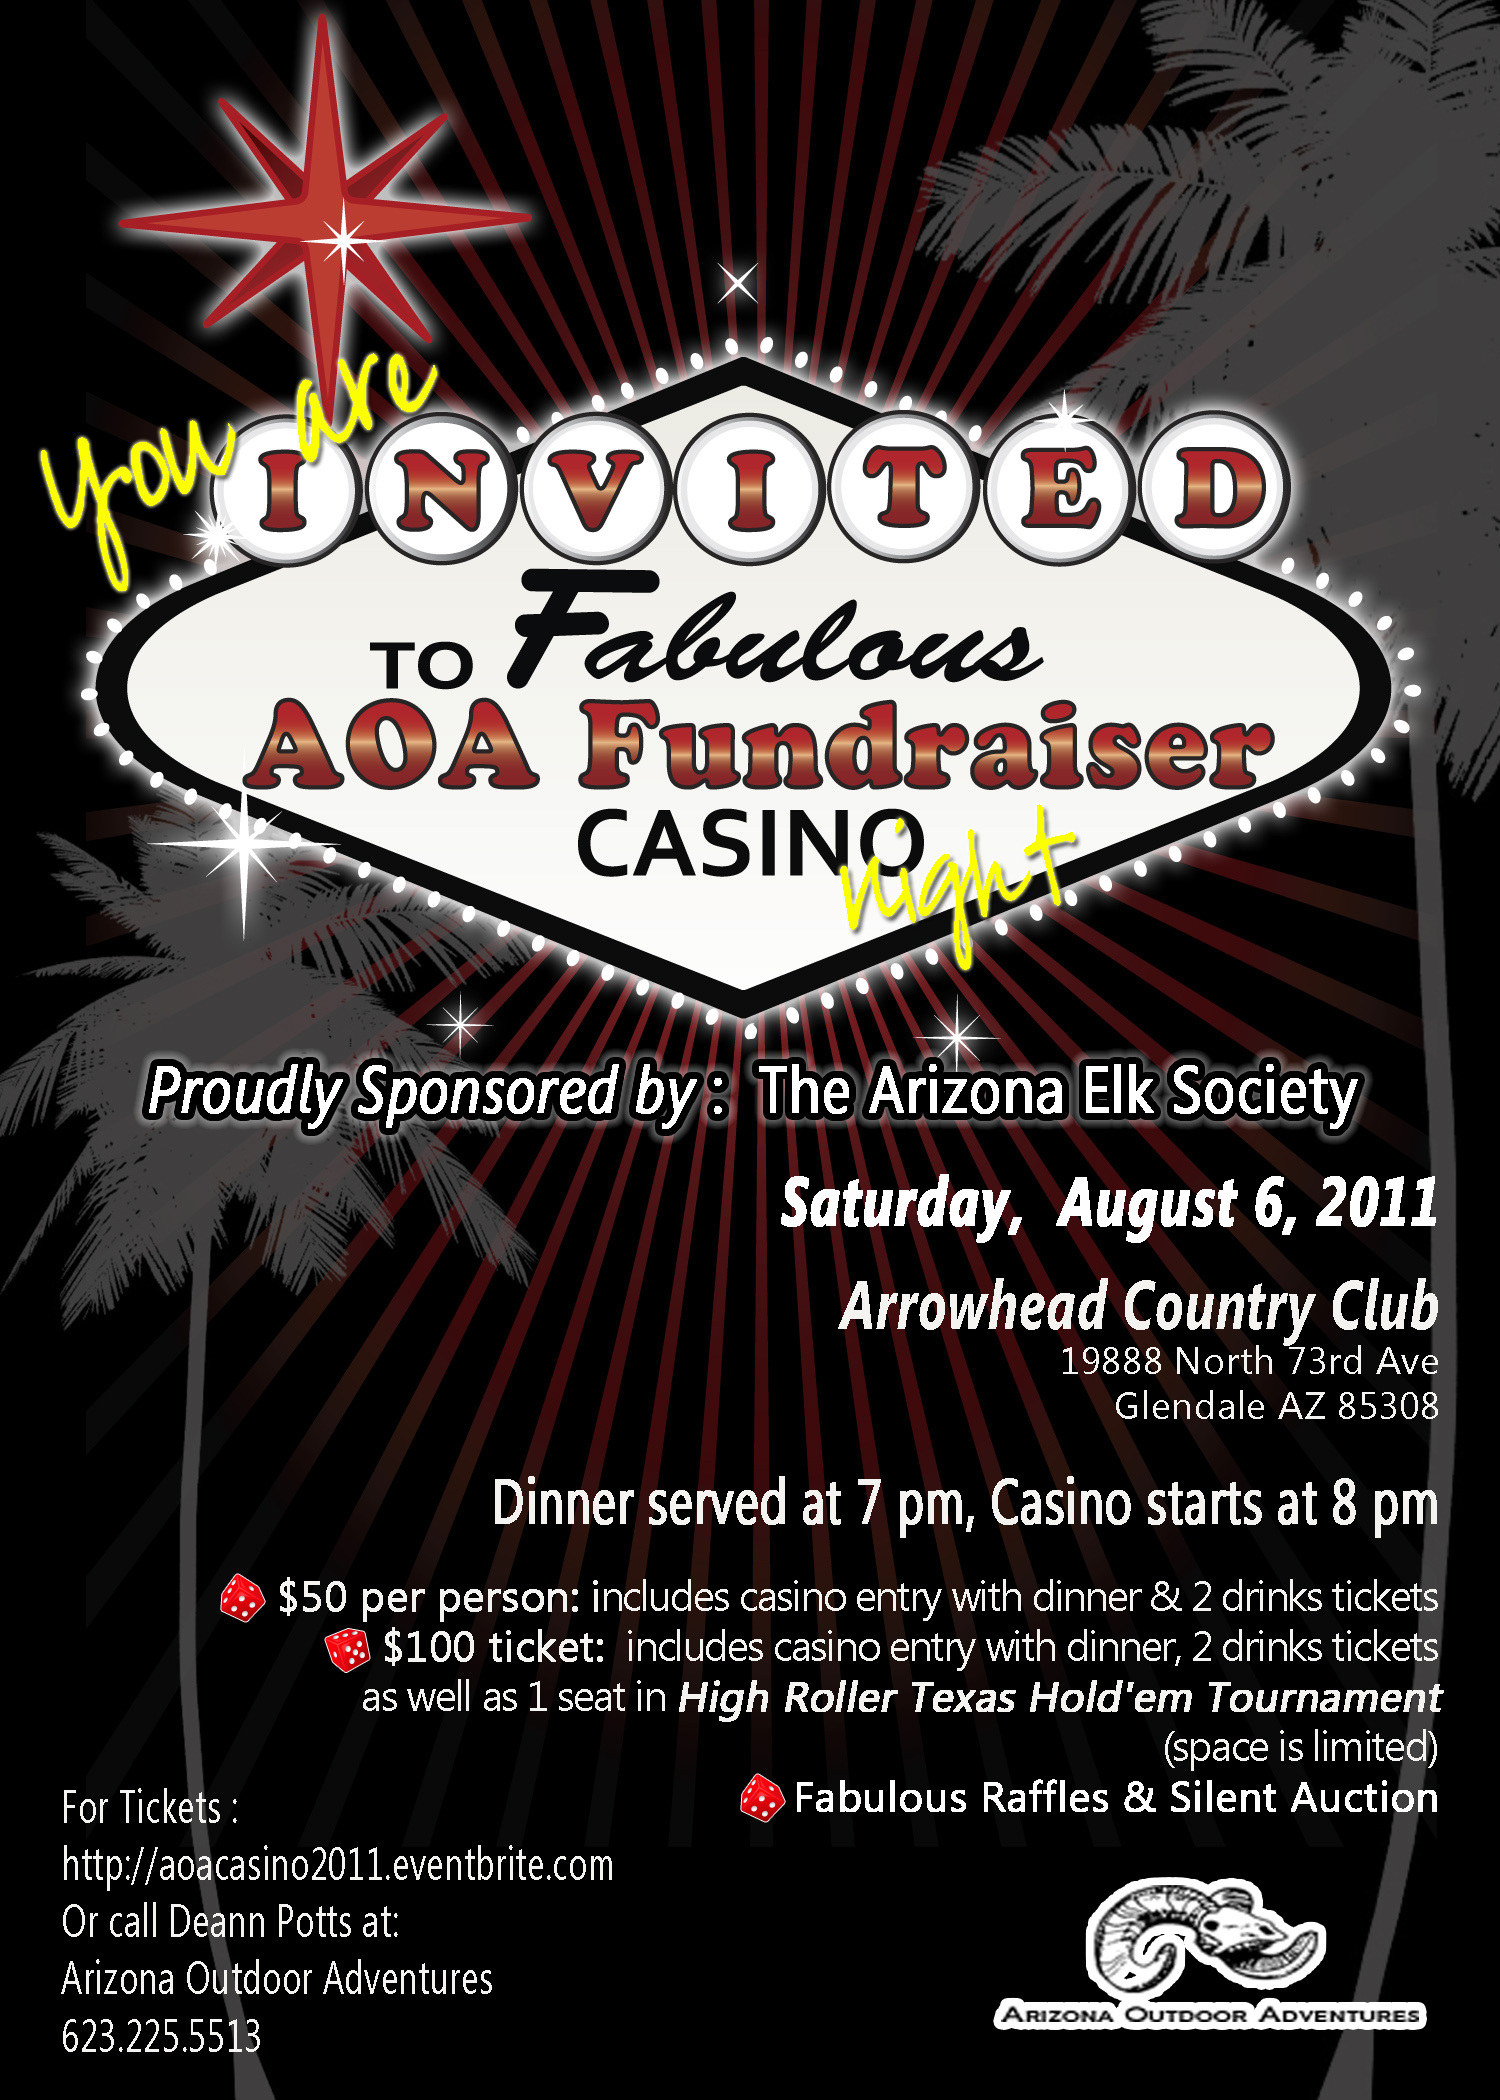 arizona outdoor adventures casino night fundraiser